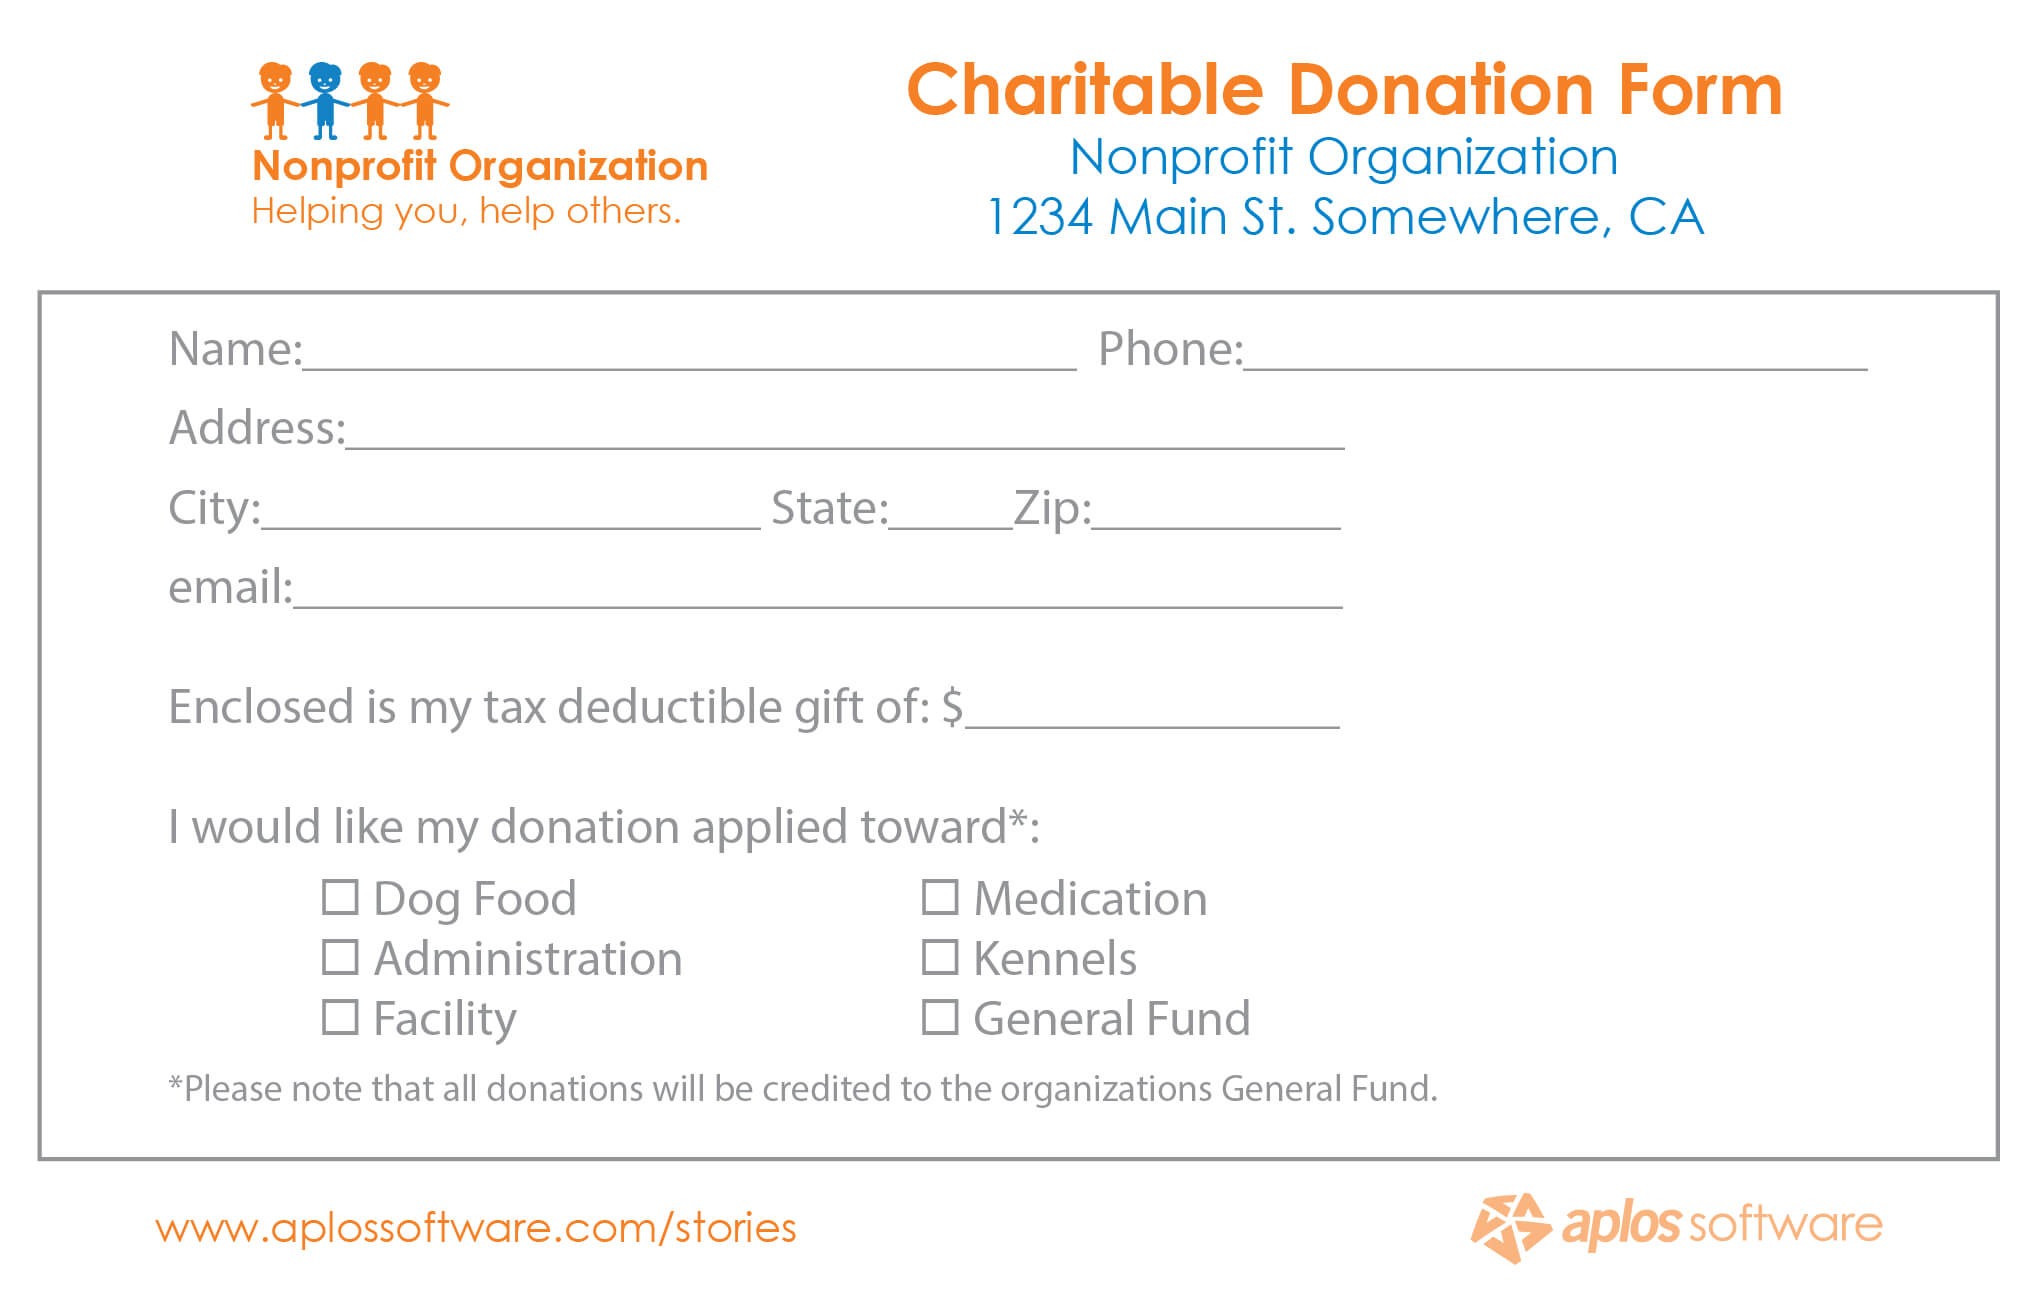 016 Template Ideas Fundraising Form Excel Donation with Fundraising Pledge Card Template